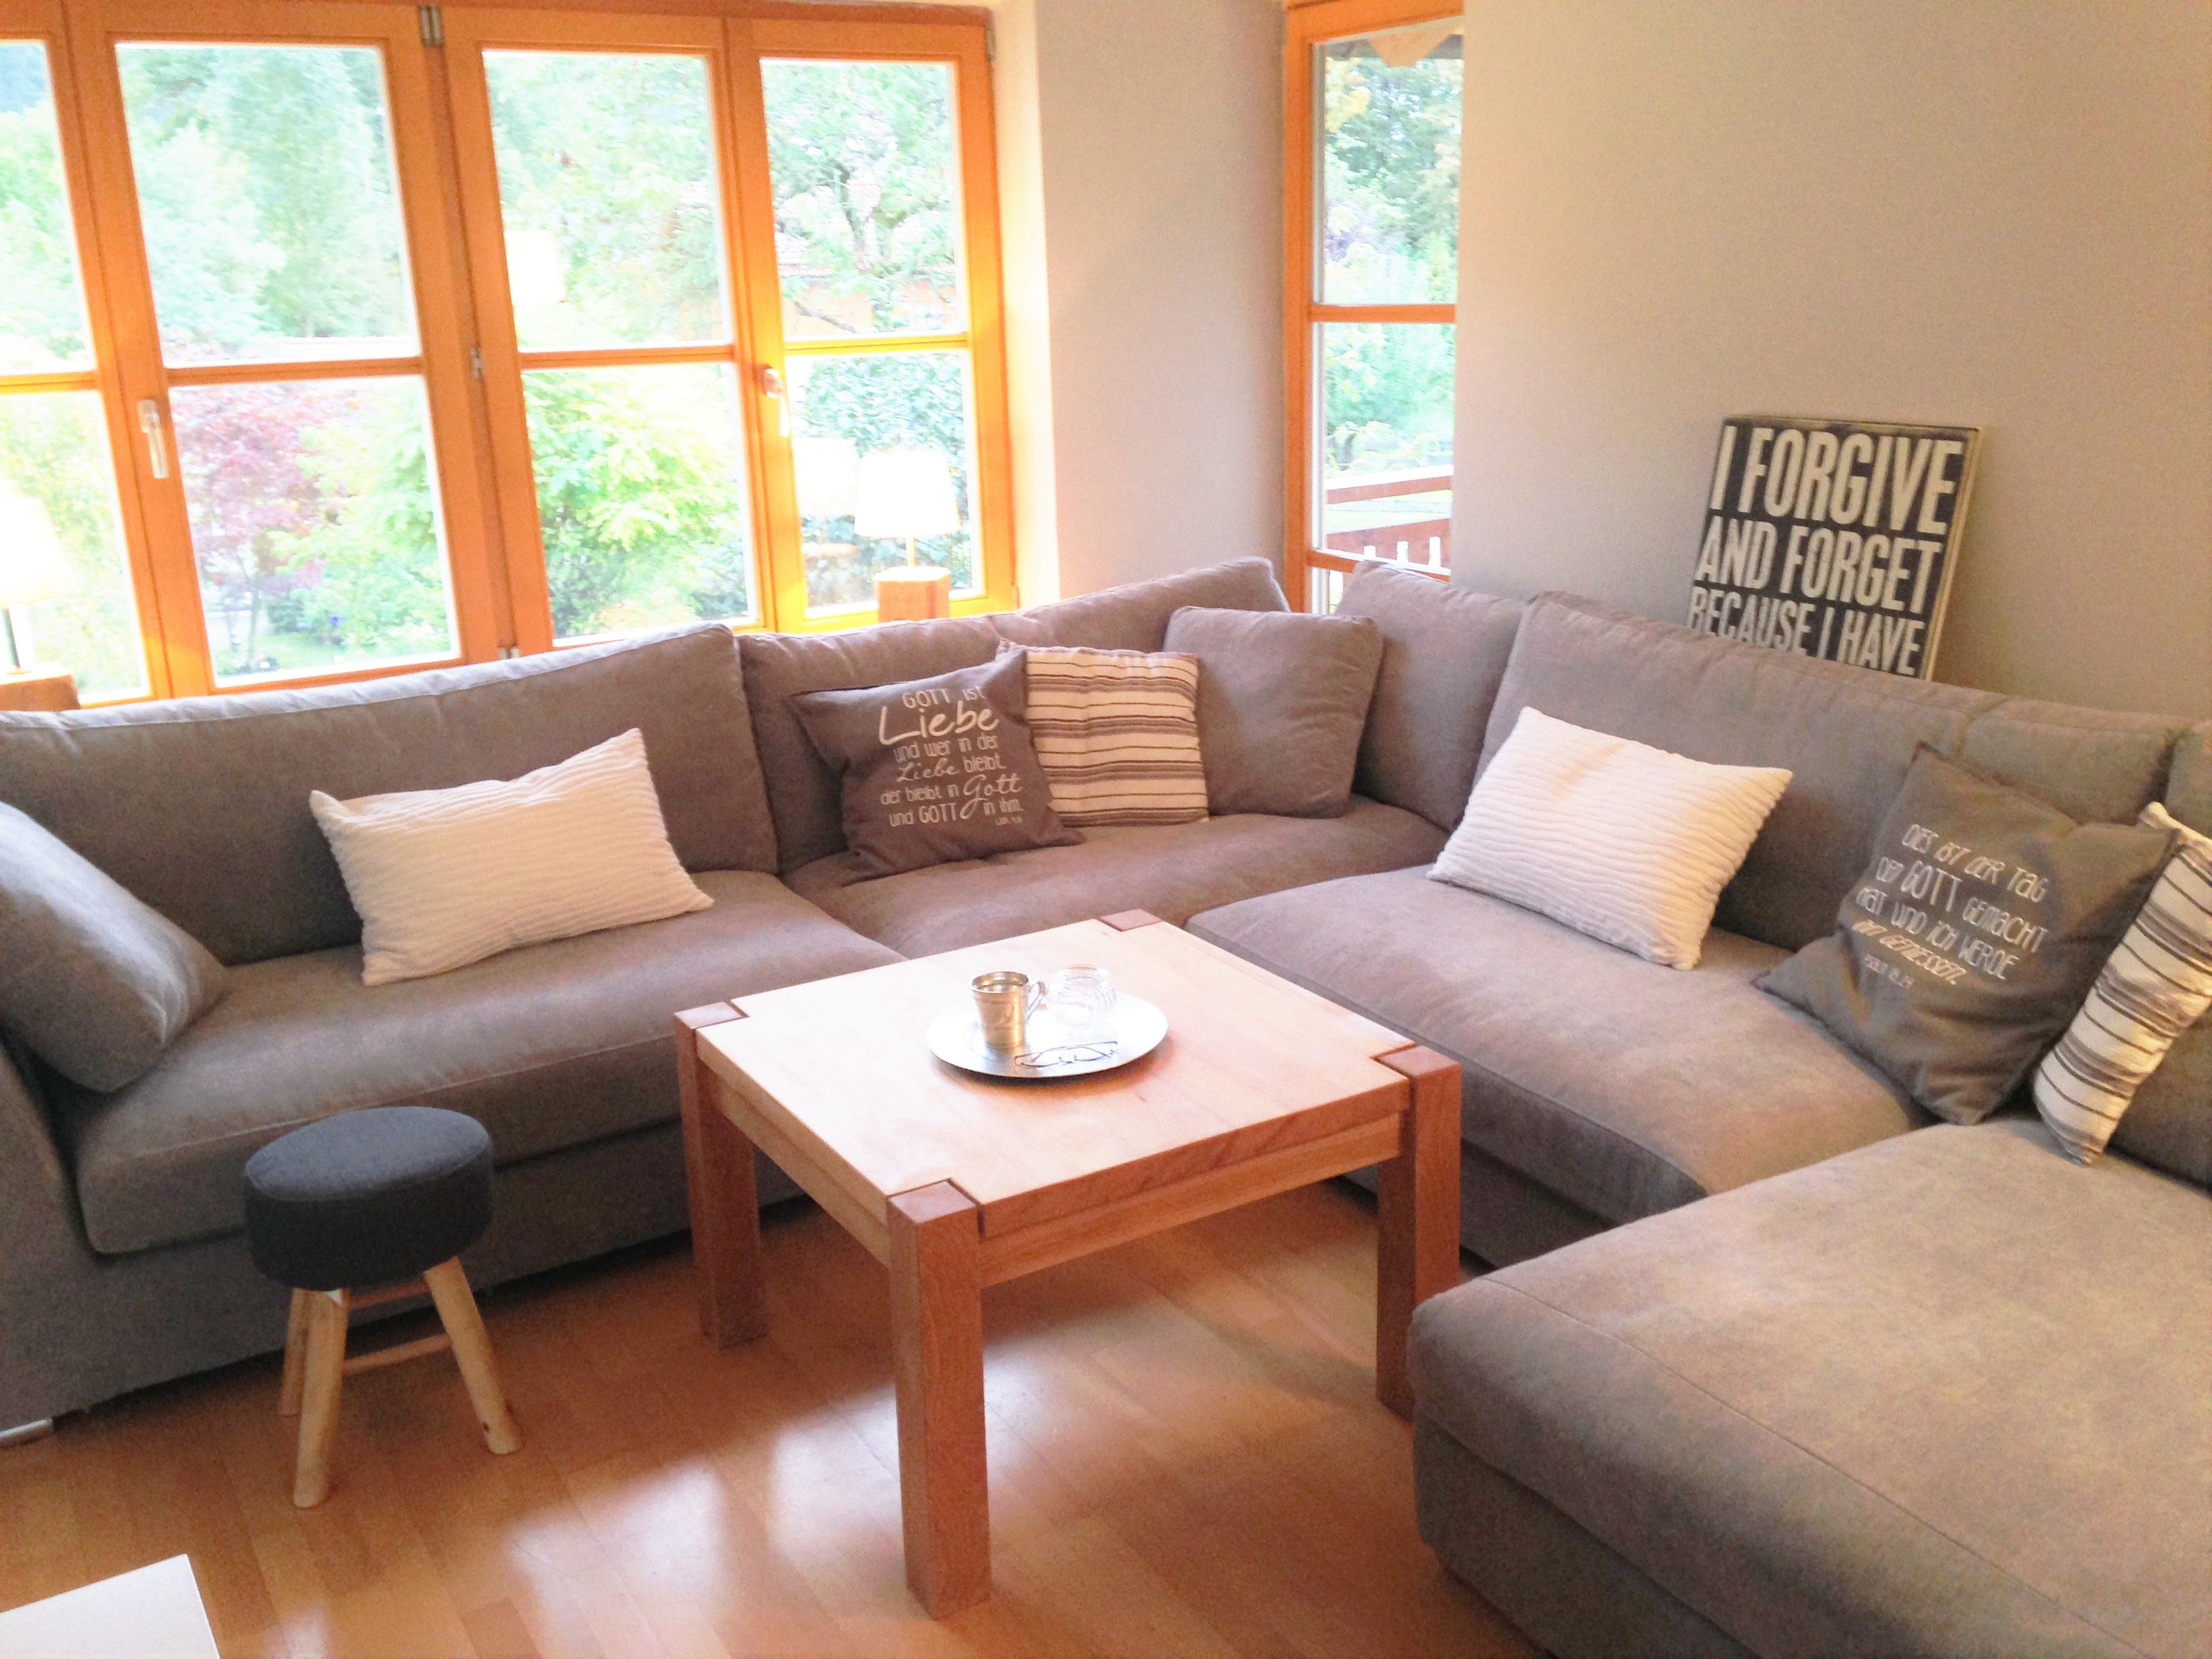 graue Couch mit Holzfenster #couch #grey #wood #window # ...